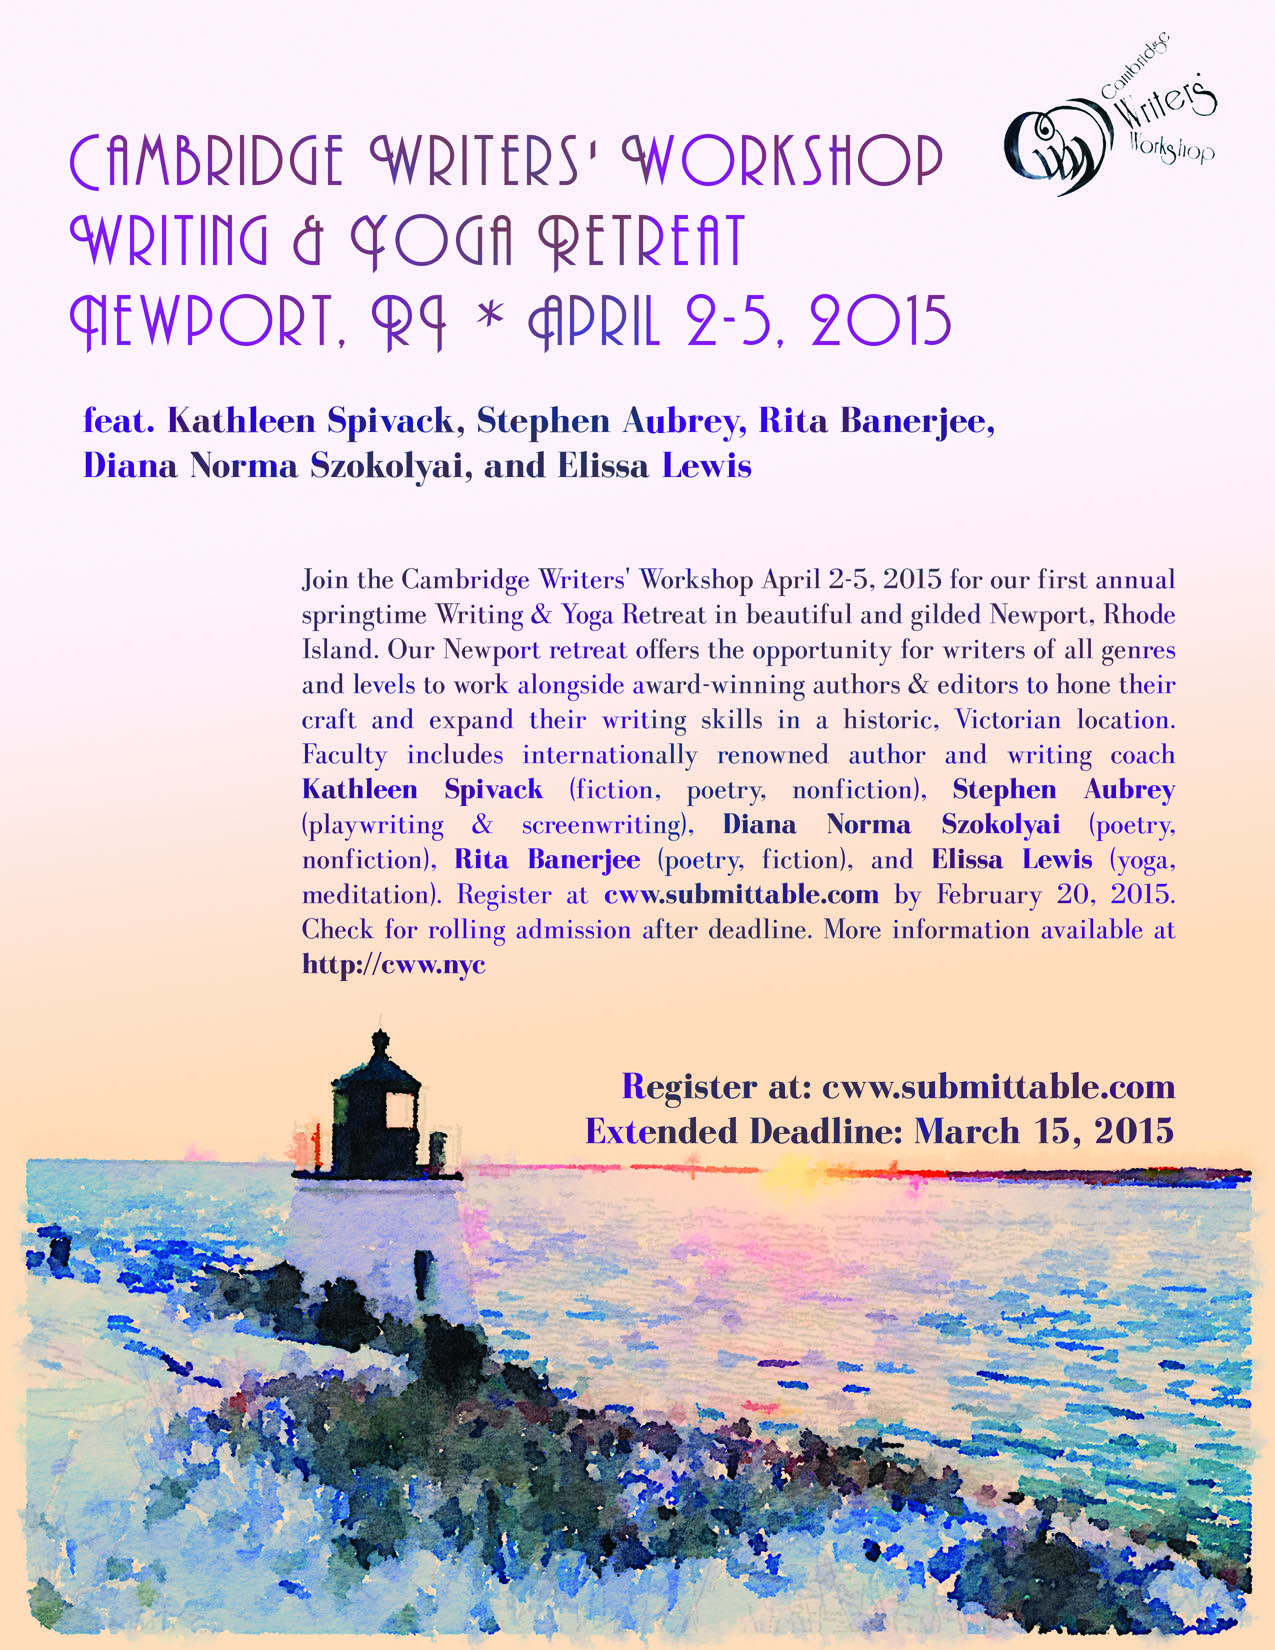 https://cambridgewritersworkshop.files.wordpress.com/2014/12/cww-newport-march15deadline.jpg